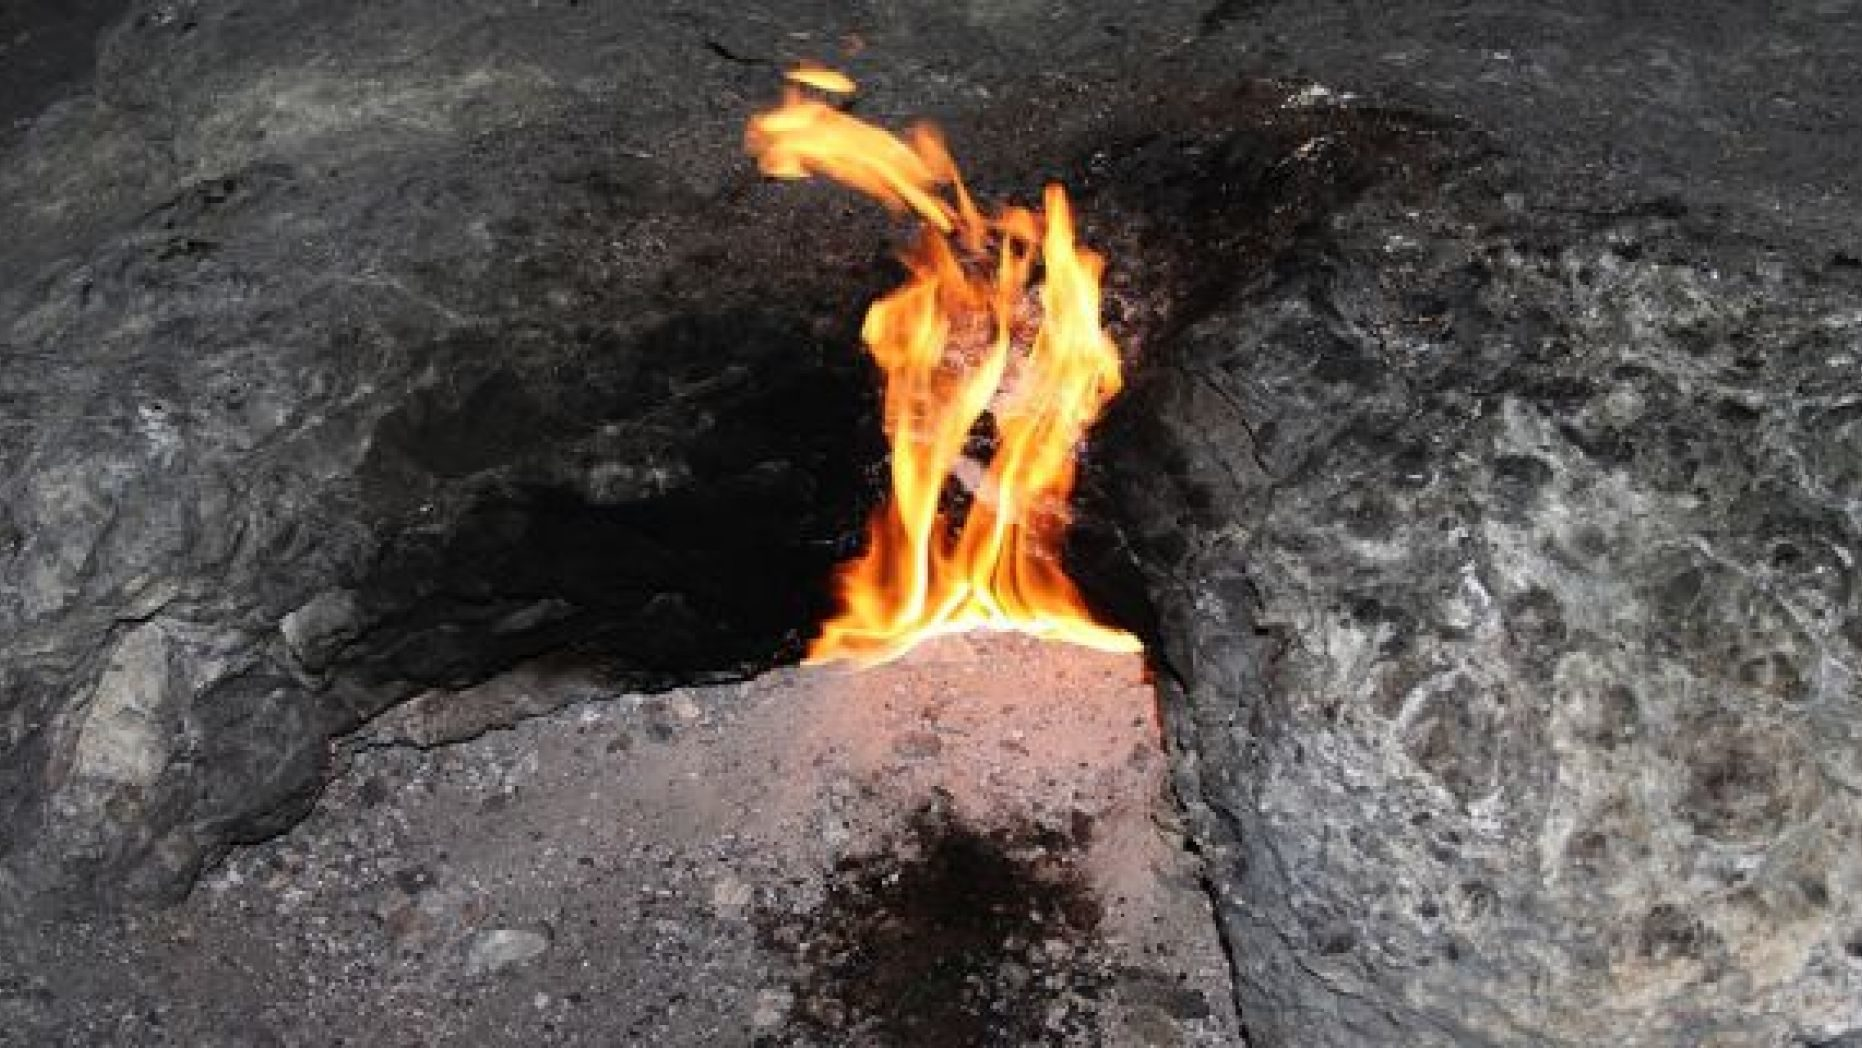 Mysterious hole shoots out flames for nearly an hour in Arkansas: Satan 'ruled out' 21